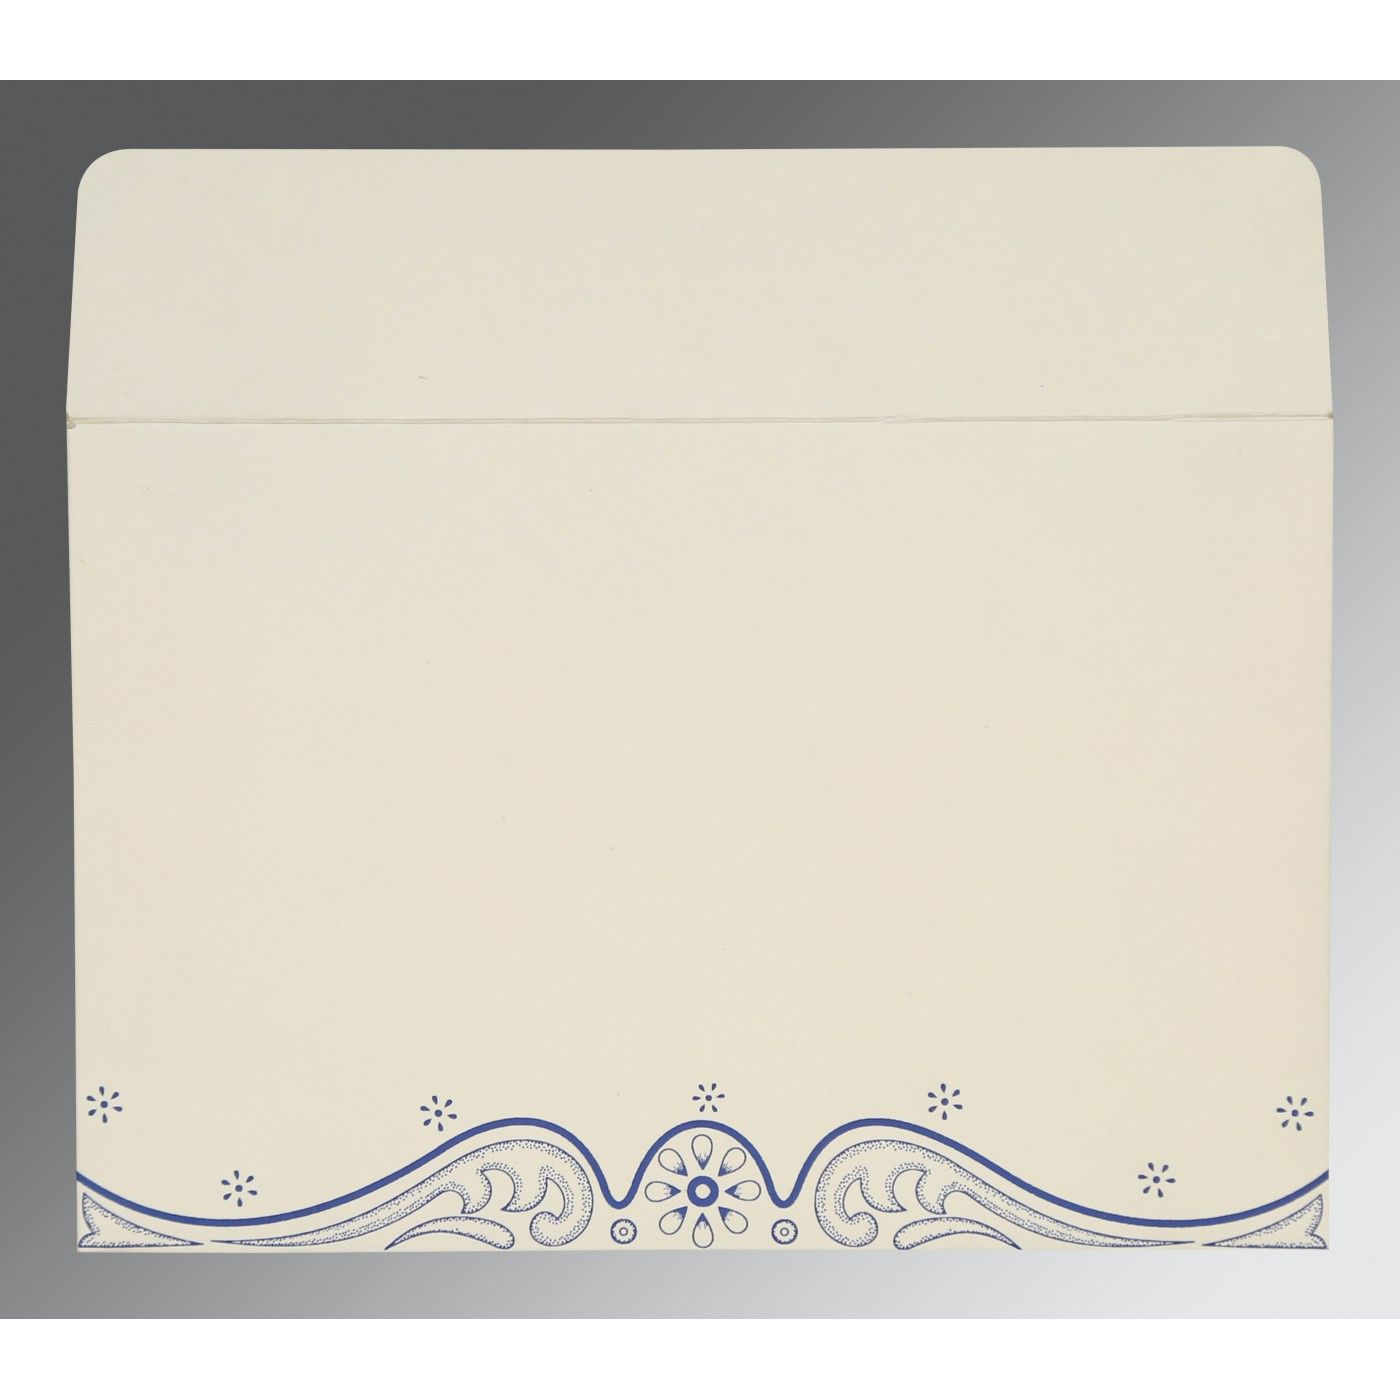 COBALT BLUE MATTE EMBOSSED WEDDING INVITATION : CD-8221C - IndianWeddingCards